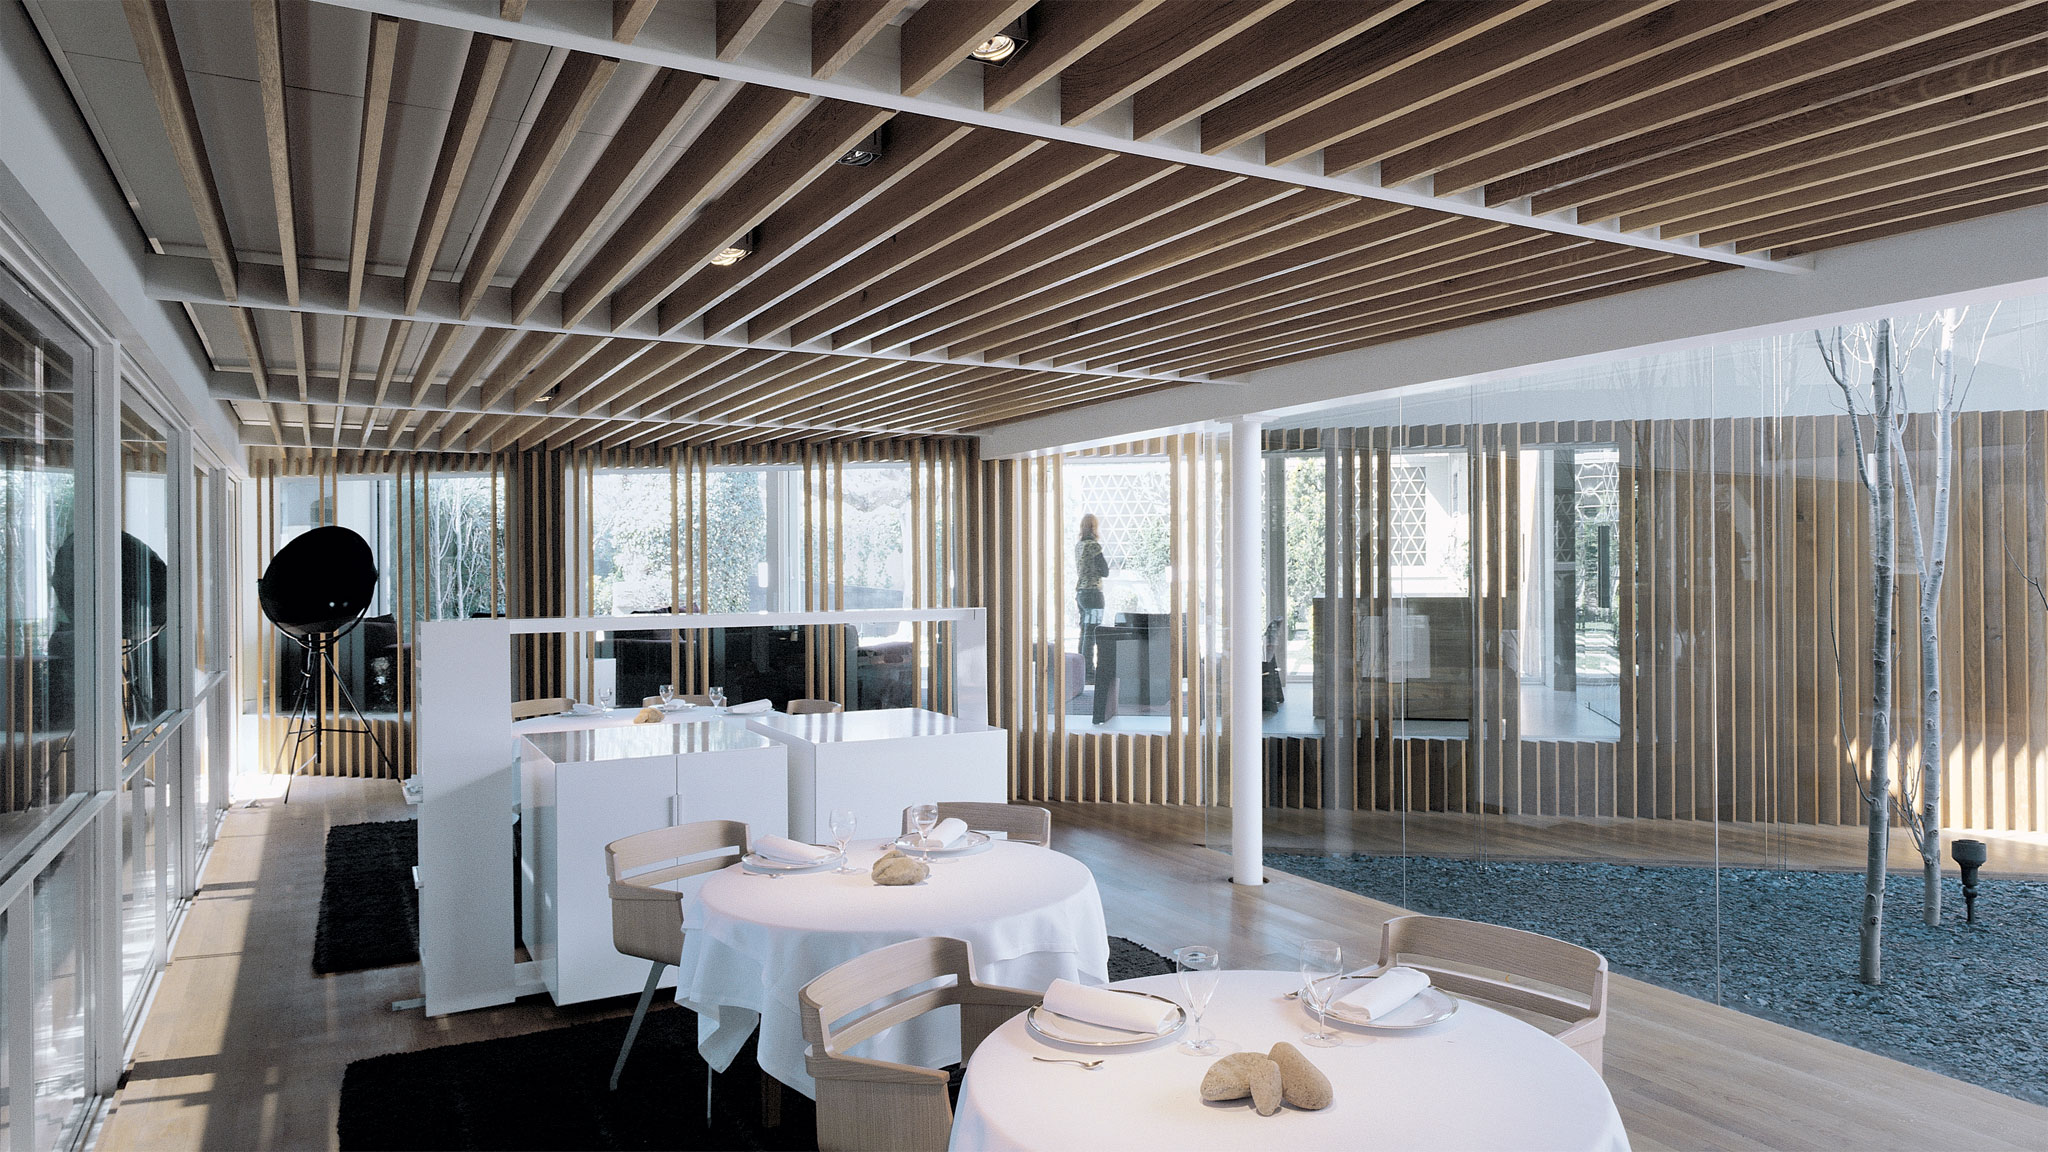 most luxurious restaurants, restaurant, interior design, luxury, food most luxurious restaurants Heaven on a Plate – The Most Luxurious Restaurants in the World luxury restaurats el celler de Can Roca